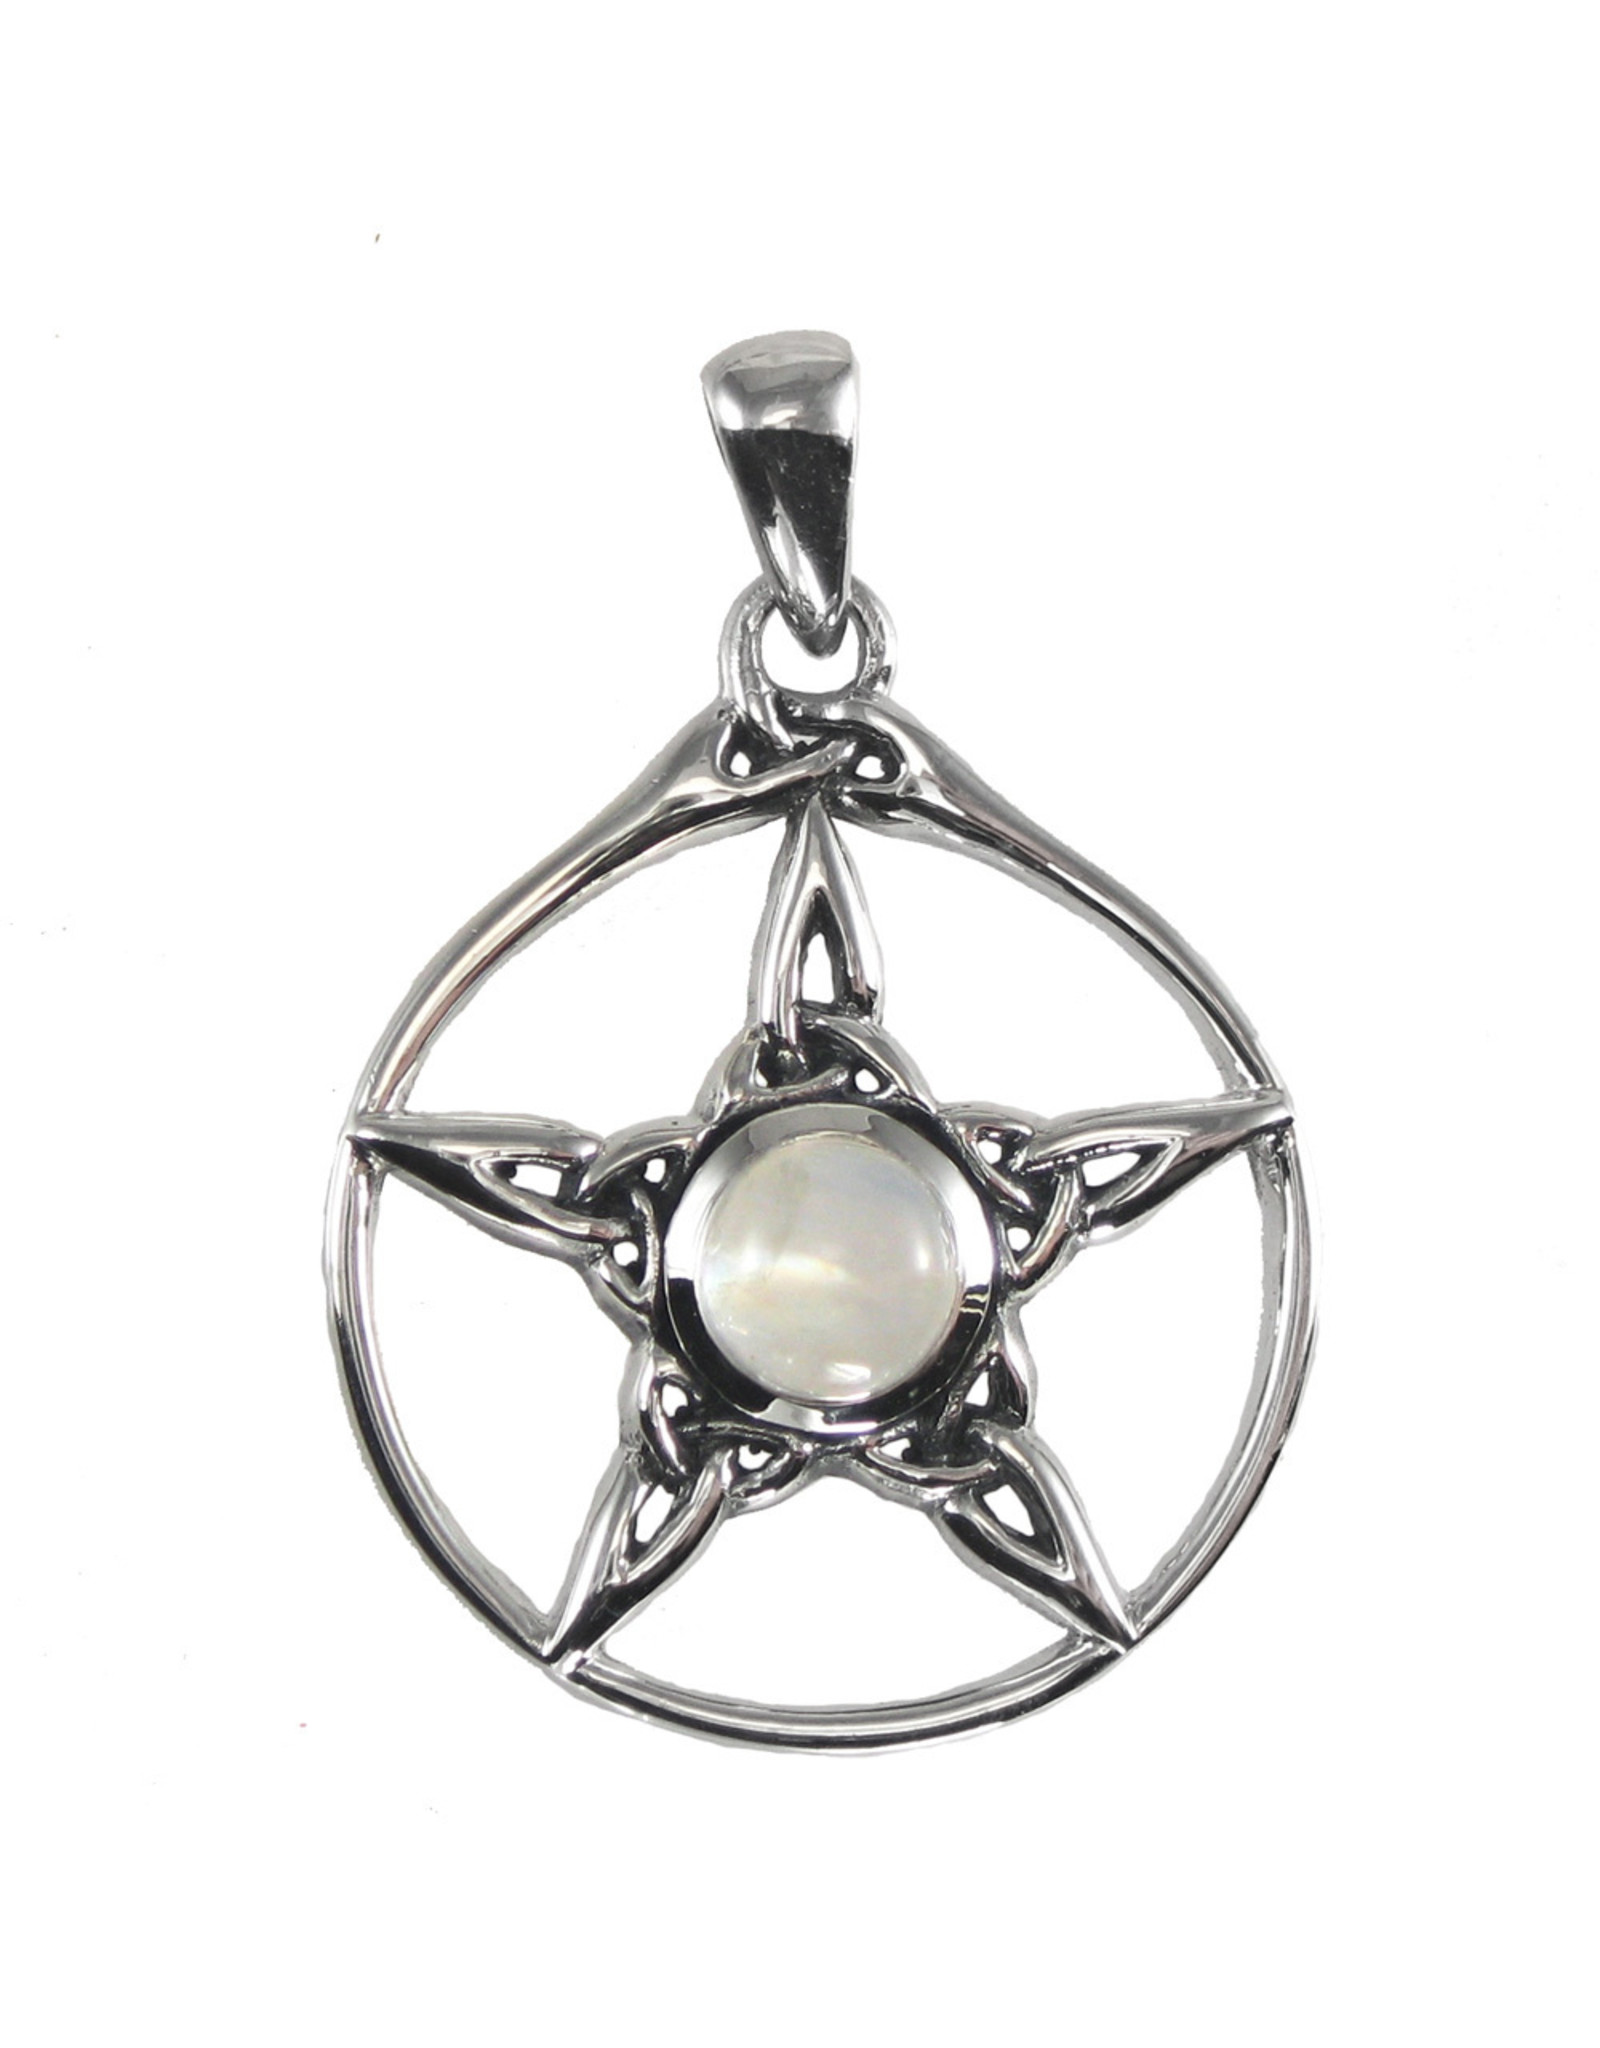 Triquetra Pentacle Pendant with Rainbow Moonstone in Sterling Silver